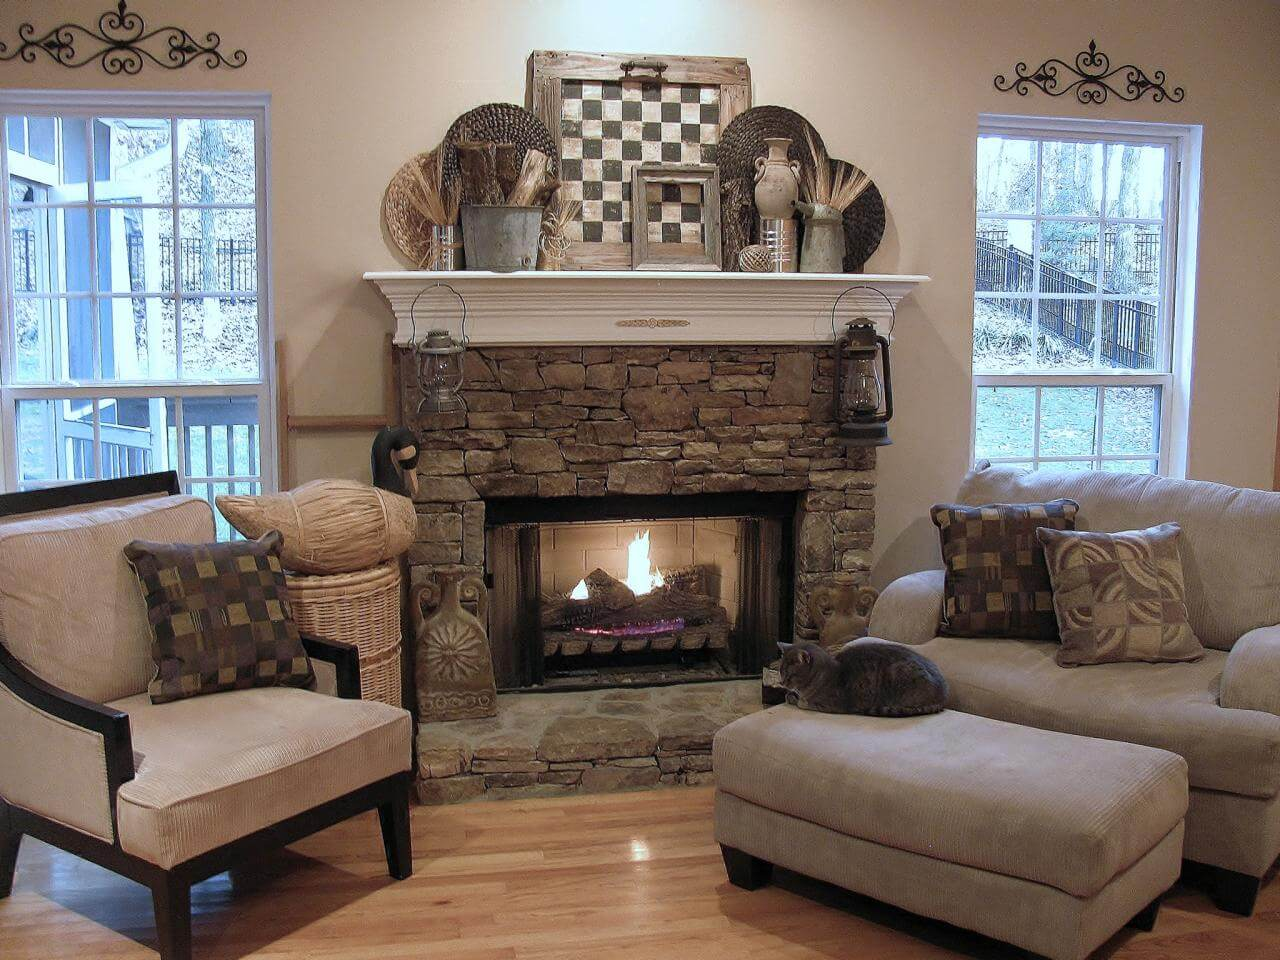 The fireplace mantel is ripe with decor options